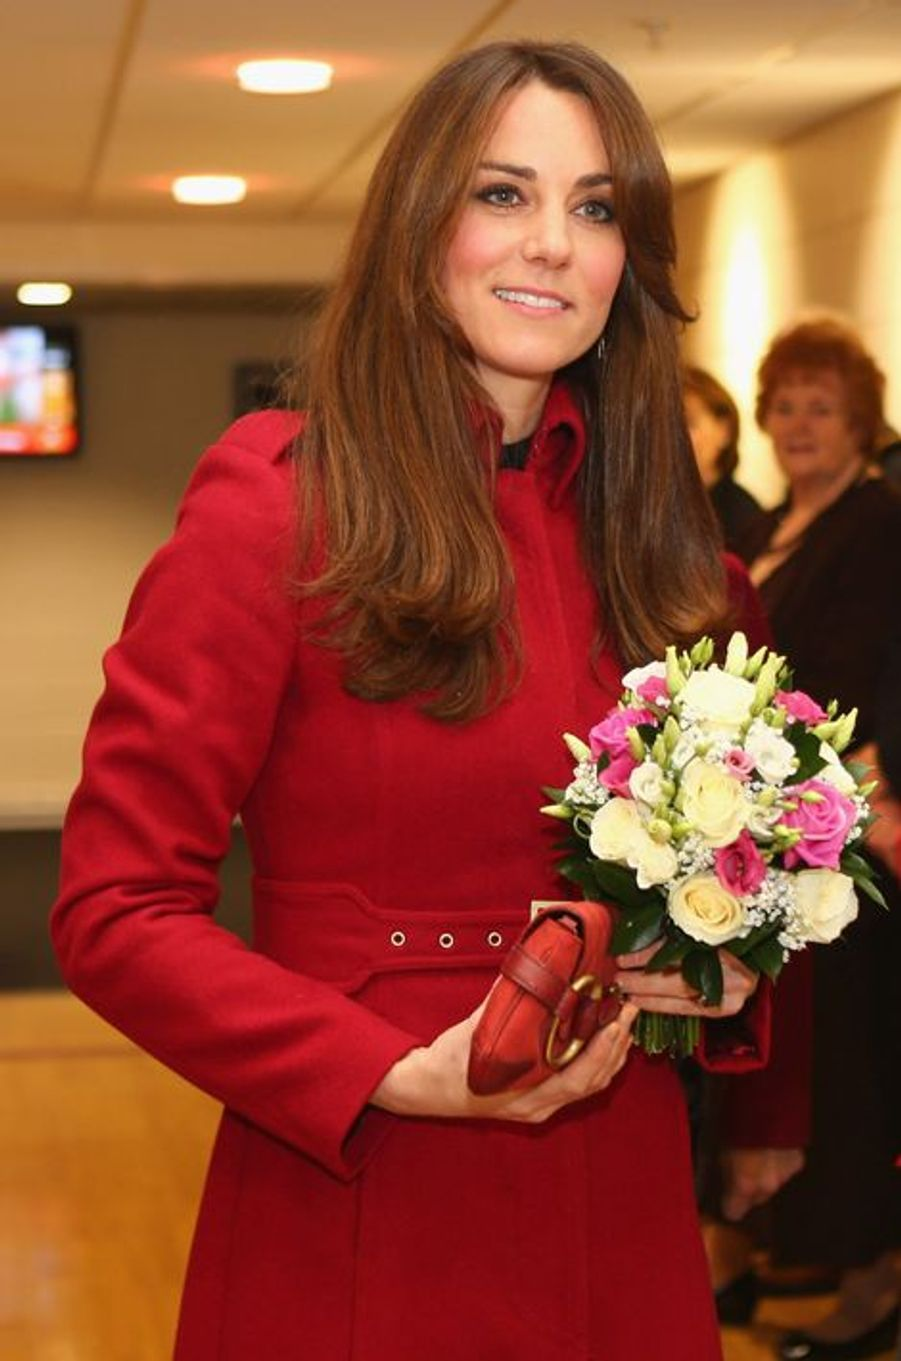 La duchesse de Cambridge Kate, le 24 novembre 2012